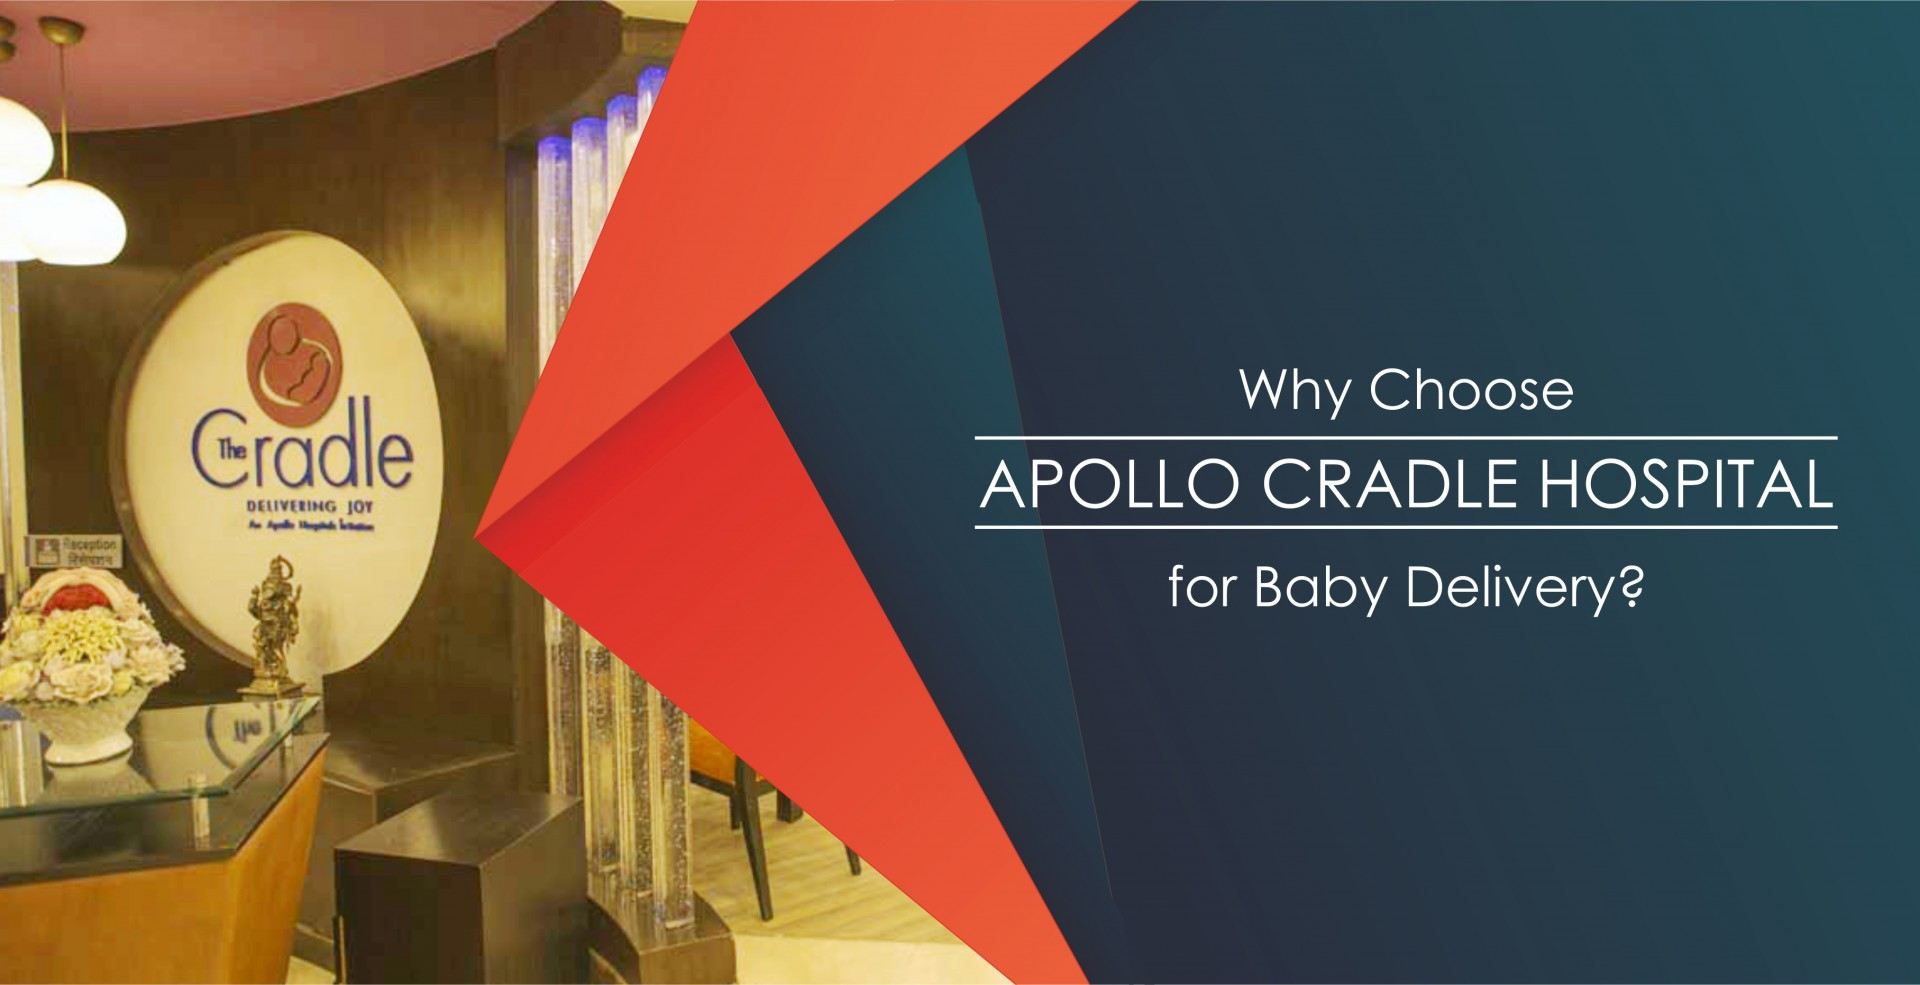 Why Choose Apollo Cradle Hospital for Baby Delivery